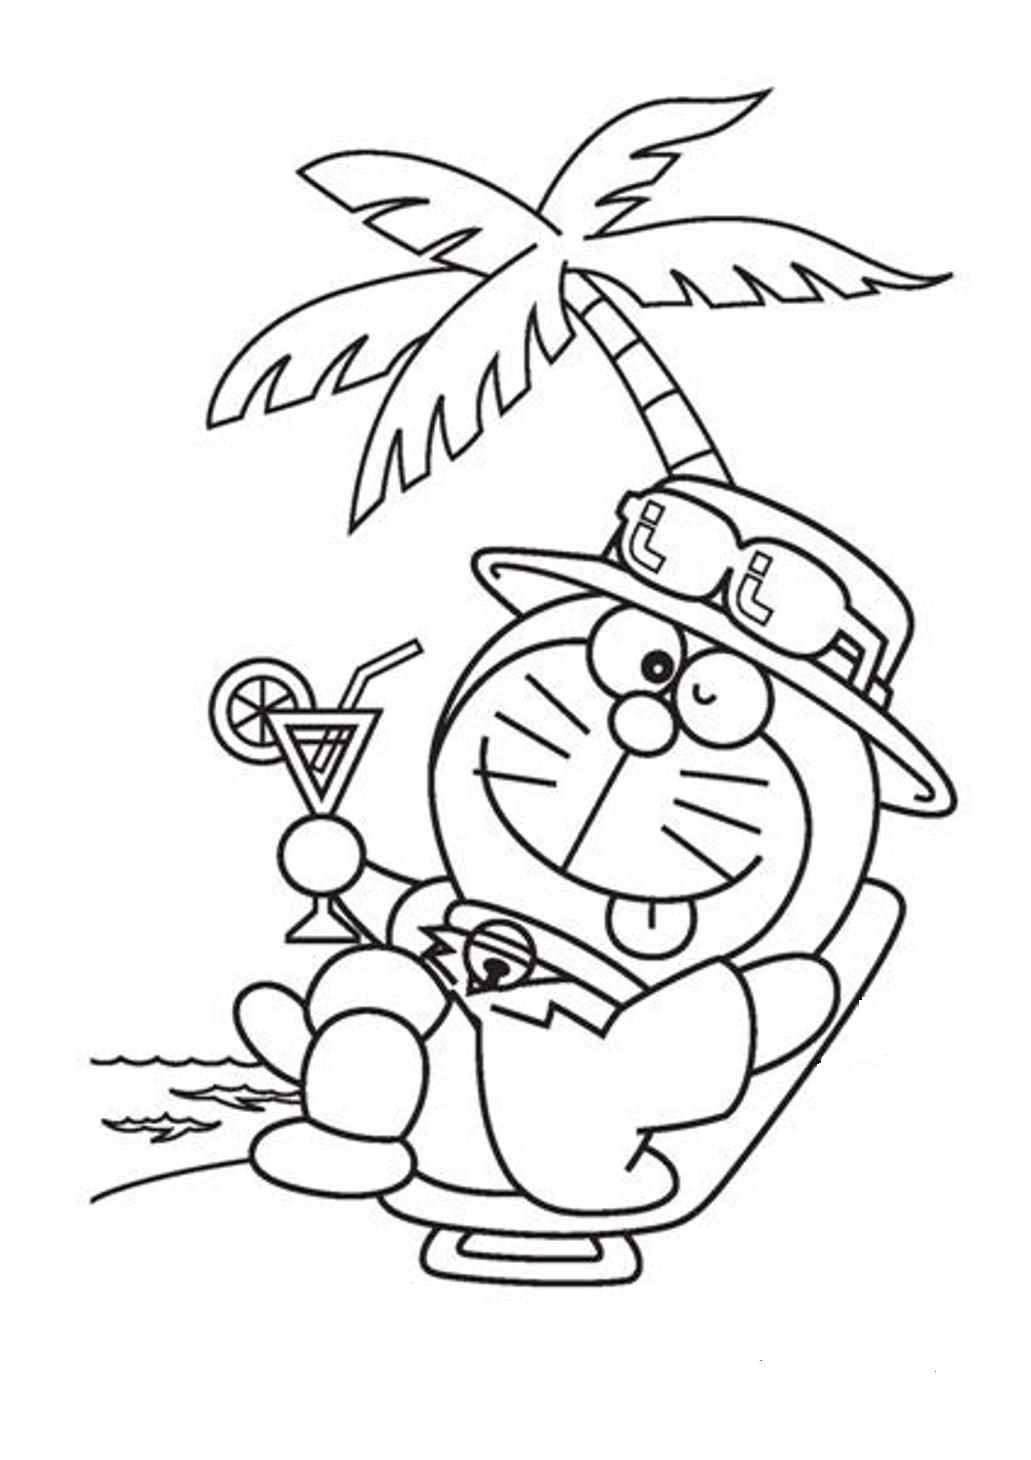 1031x1460 Relaxing Doraemon Cartoon Coloring Pages Page Love